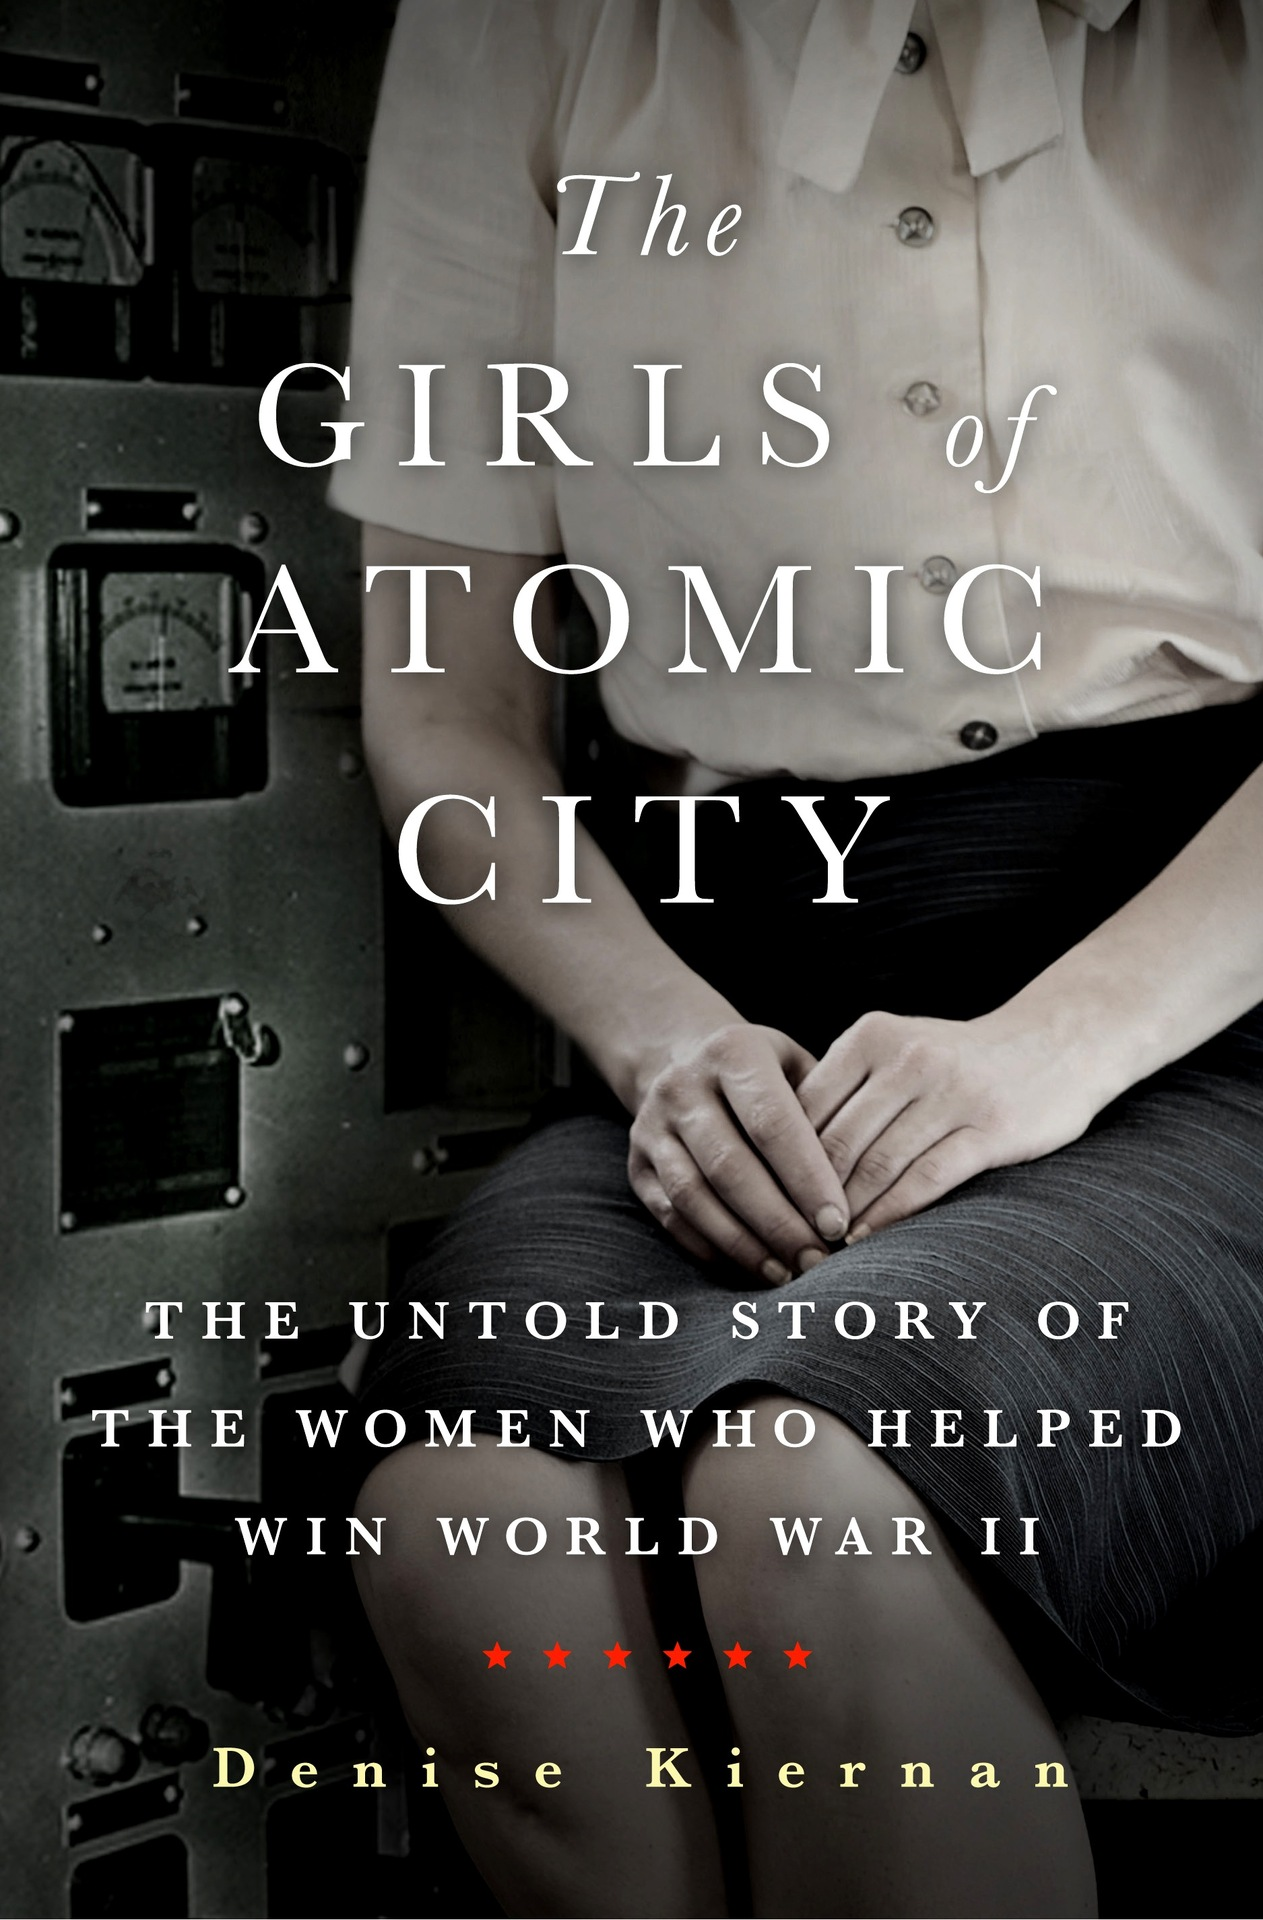 daggyland :     This just in!   My wife and sometimes co-author Denise Kiernan just got the cover of her next book,  The Girls of Atomic City,  about the women who unknowingly worked to create the fuel for the first bomb.   It's a true story—a narrative nonfiction title that will be published by Touchstone/Simon & Schuster in March 2013.   I'm proud of her. It's a project she's been working on, in various ways, for the last seven years or so.   To find out more, you can check out  Denise's website …   Sign up for the newsletter at the  book site …   Check out her old-timey WWII-era images on her  Tumblr blog .   You can pre-order via  Amazon .   Or pre-order a signed copy via our indie bookstore,  Malaprops .    I'll post again about this when she gets a trailer together.     Thanks to my hubby for posting this. I can take no credit for designing this cover, but I am so very happy with it. Book is finally feeling real after all these years…